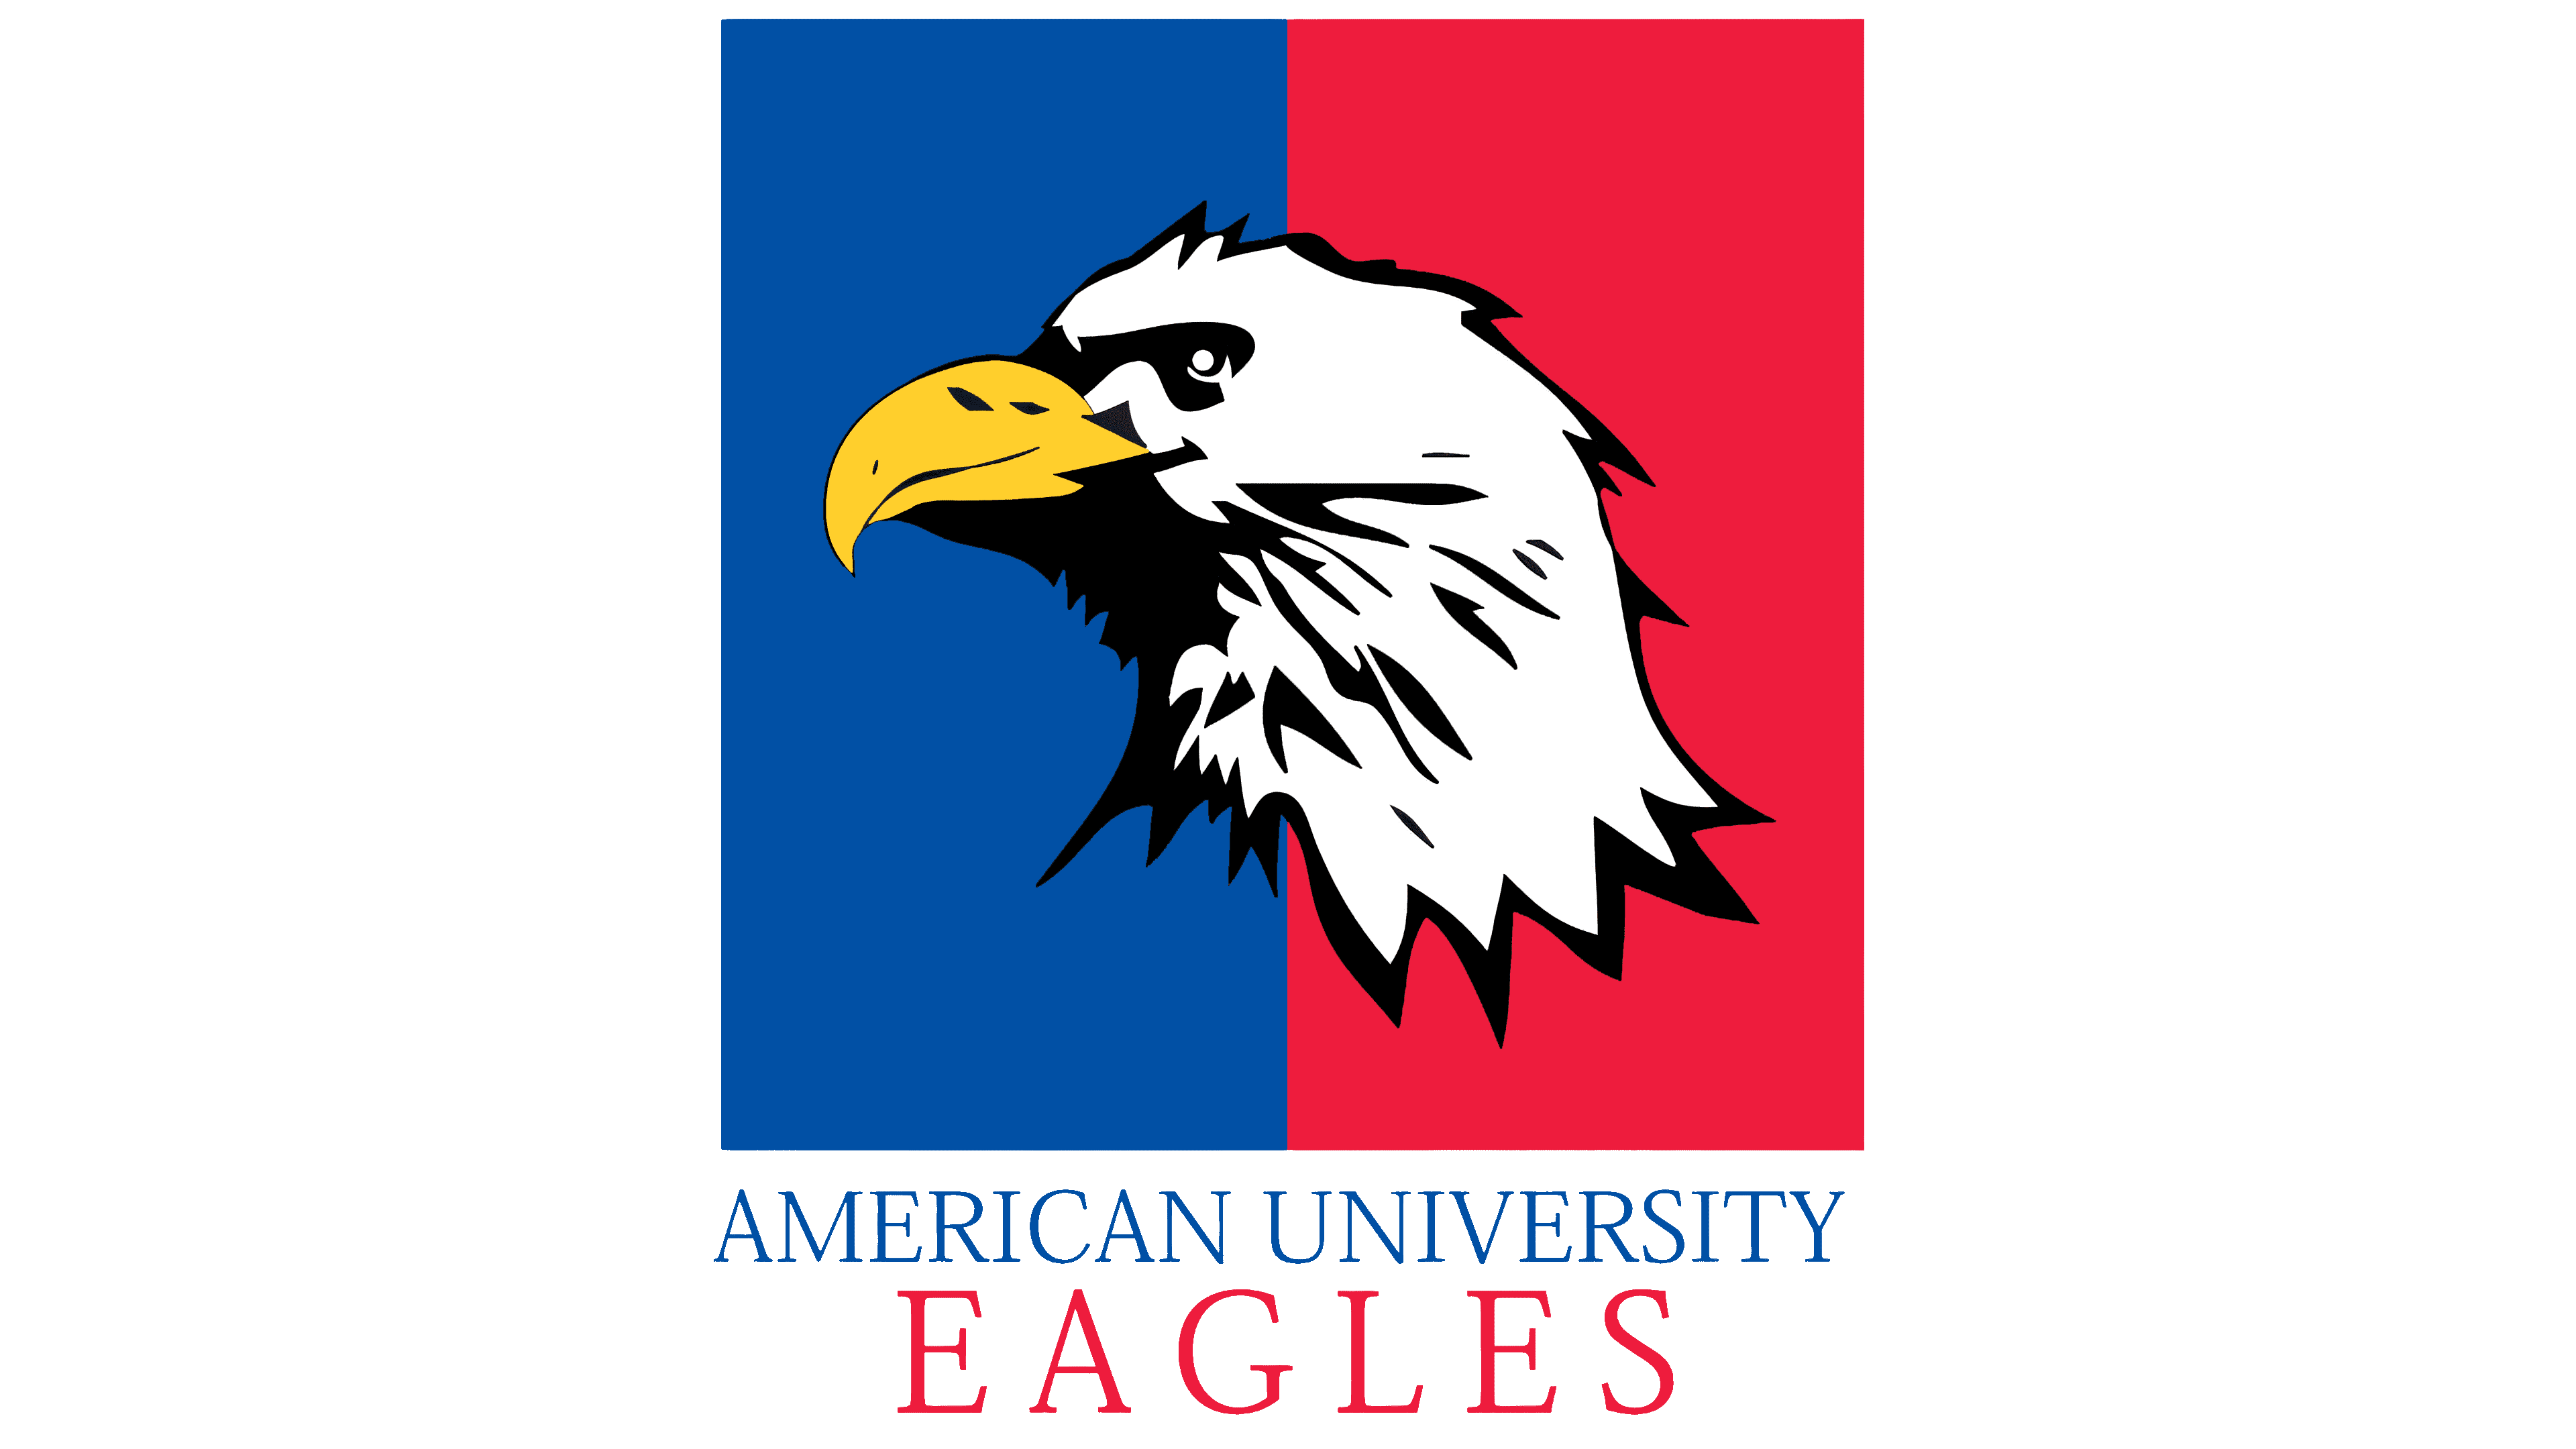 American Eagles Logo History | The most famous brands and company logos in  the world